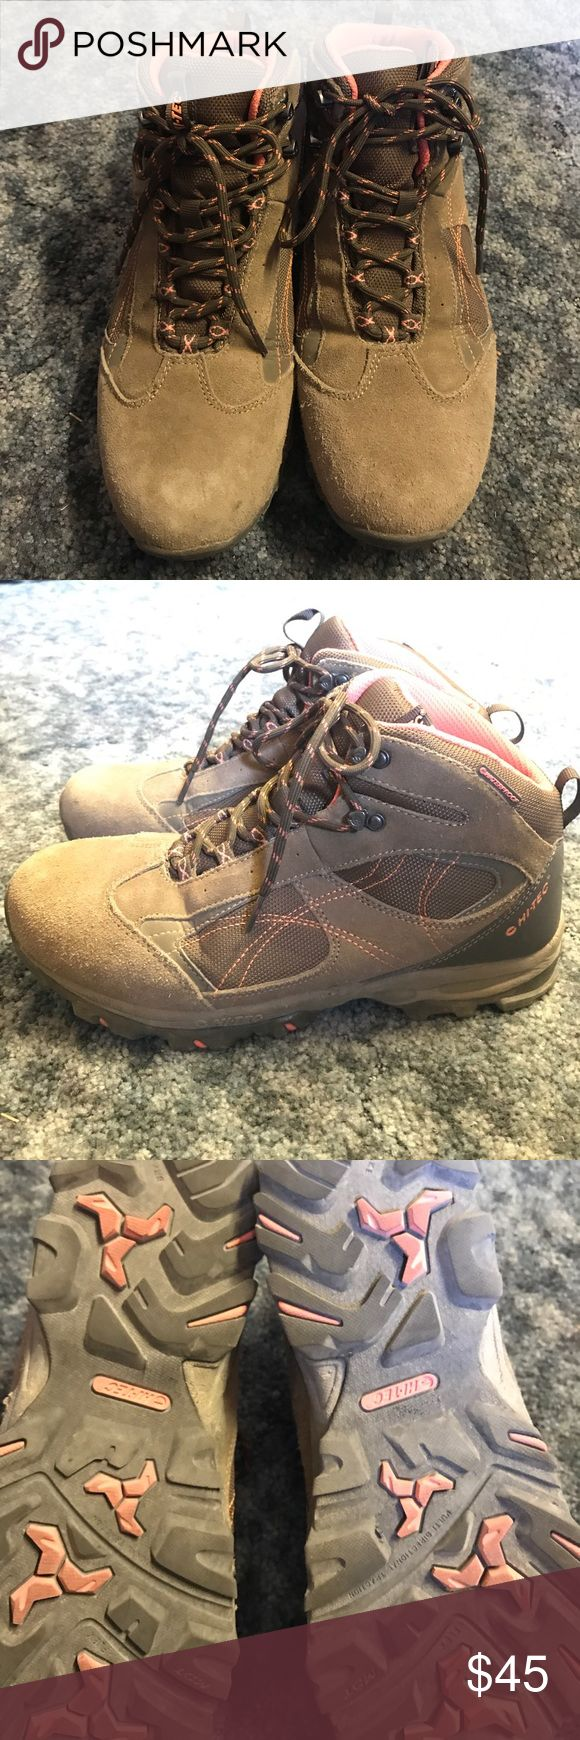 Hi-Tec Hiking Boots Hi-Tec hiking boots. Brown with orange accents. Slight wear on toes as seen in photo. Minimal wear, good amount of tread left on bottom. Only worn a few times. Comfortable fit, great boot. Men's Size 9.5 Hi-Tec Shoes Boots